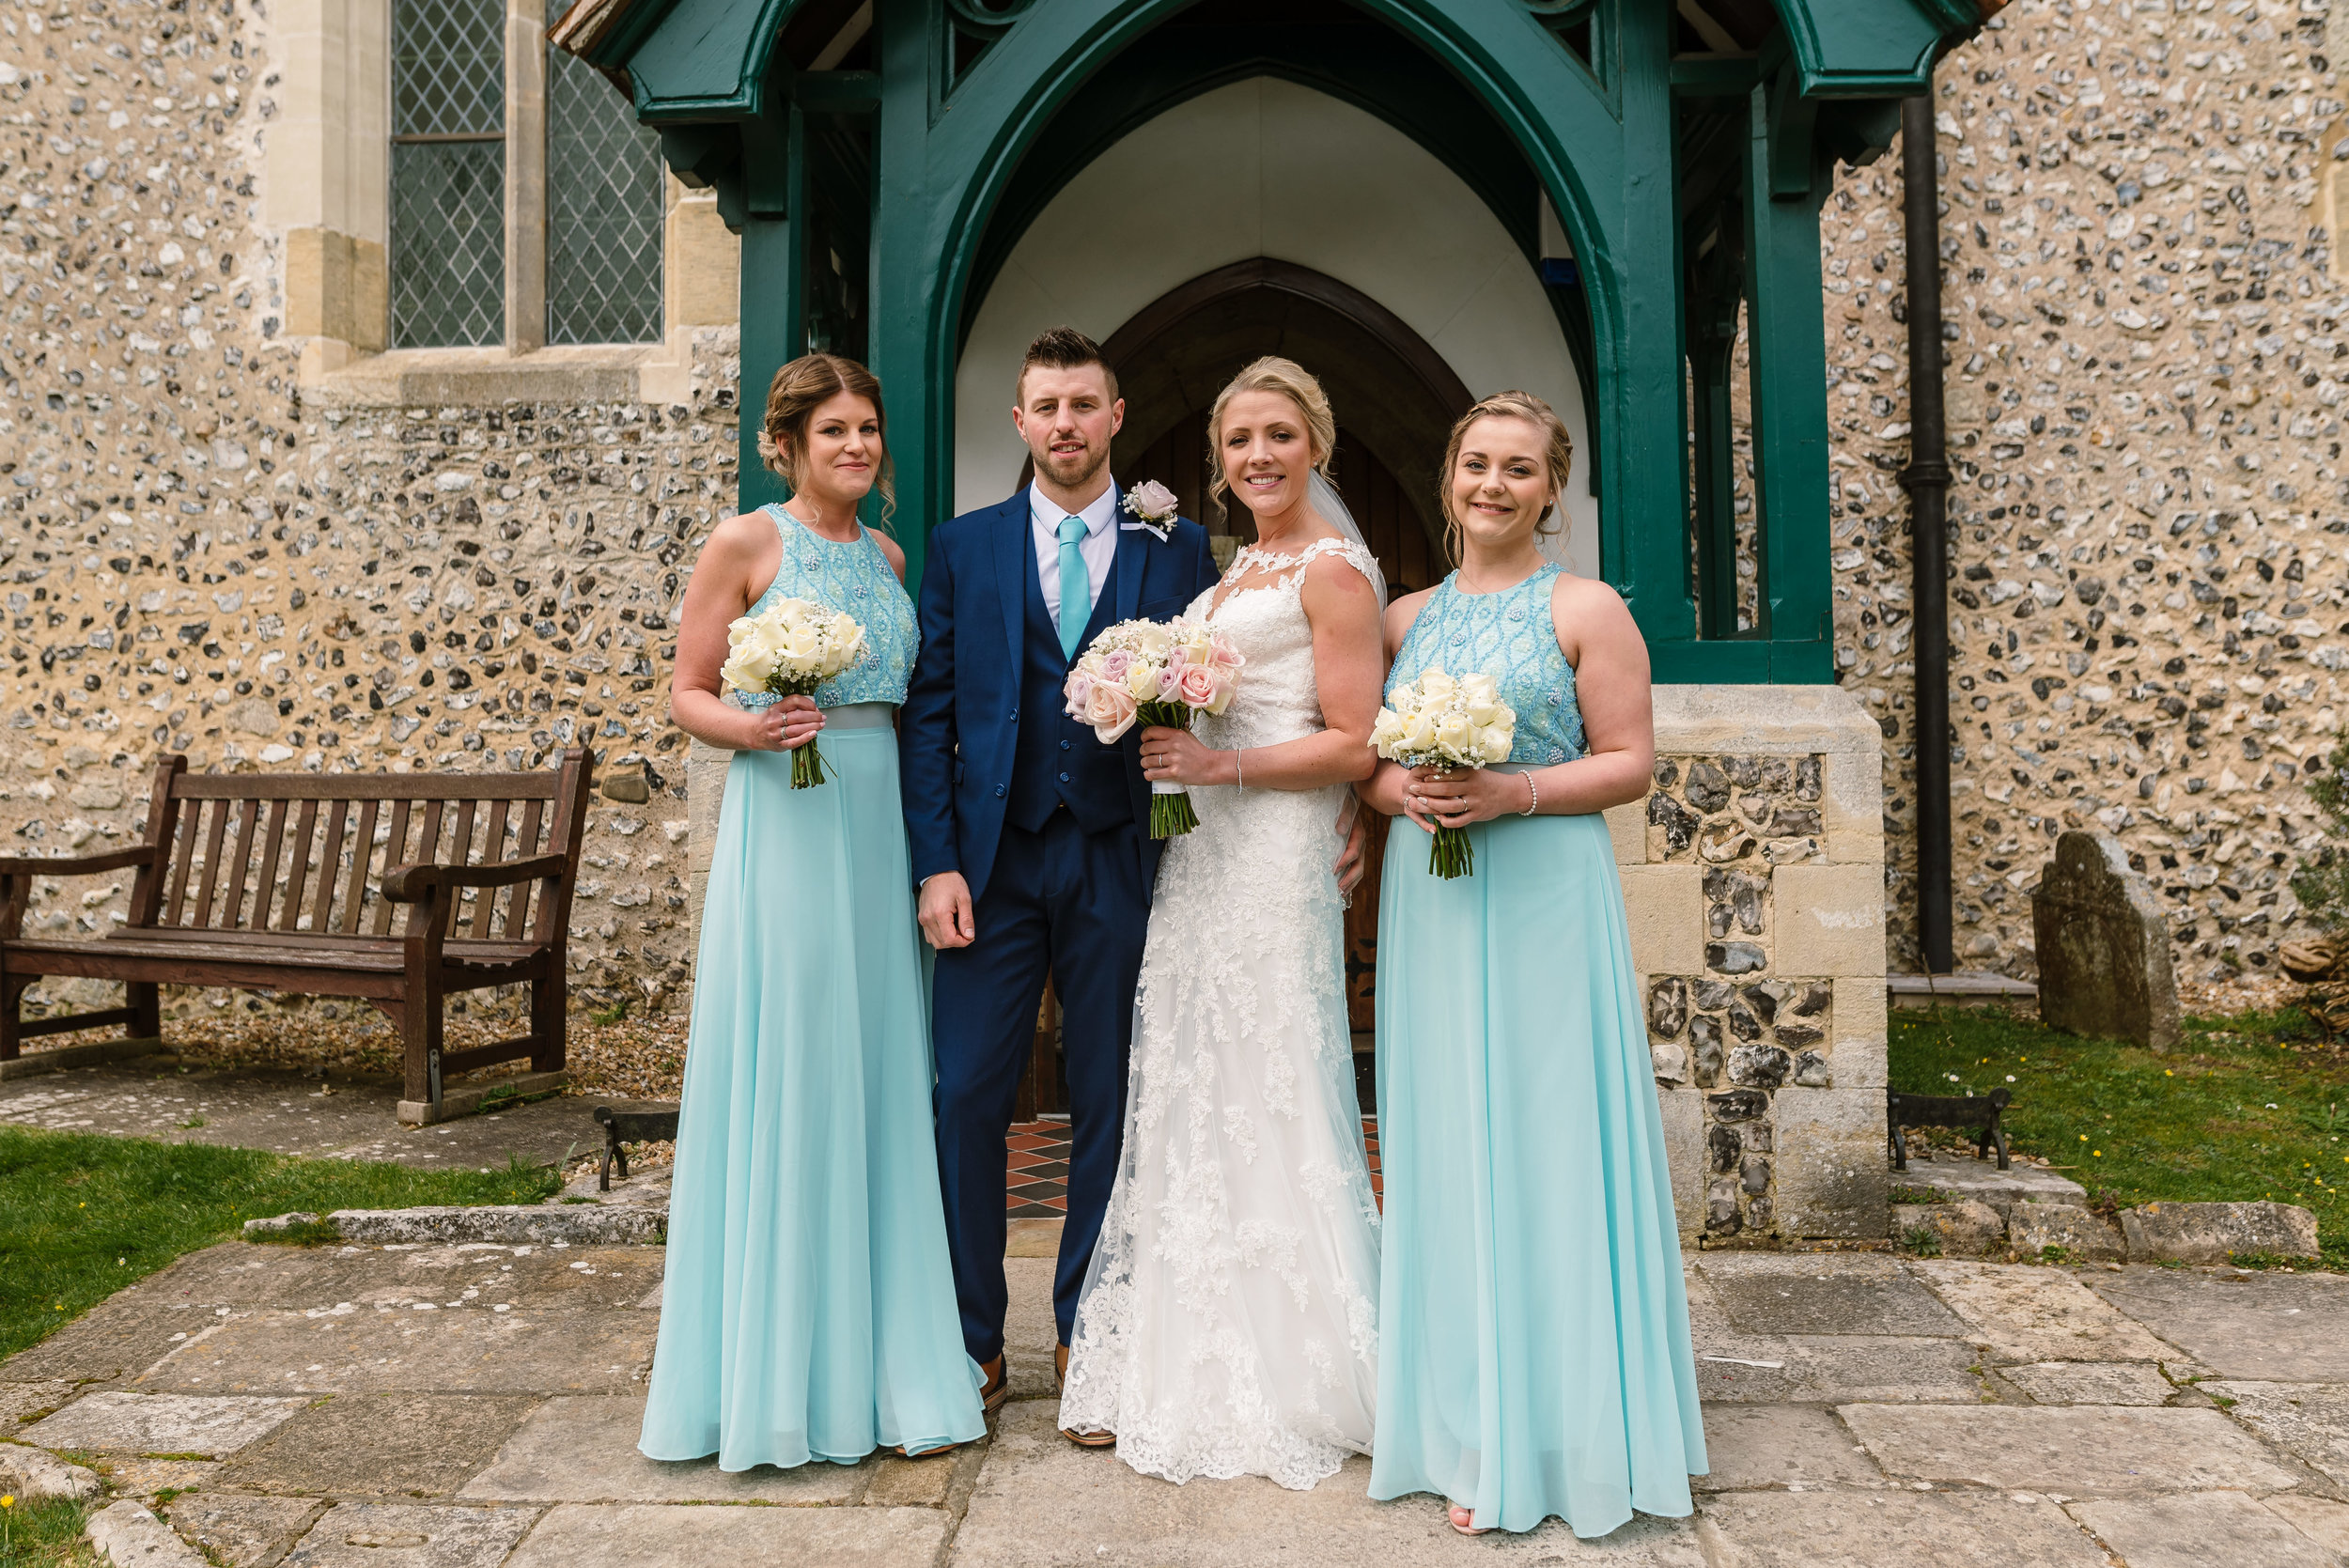 Sarah-Fishlock-Photography / Hampshire-wedding-photographer-hampshire / fleet-wedding-photographer-fleet / Hampshire-church-wedding / Hampshire-wedding-venue / Hampshire-hotel-wedding